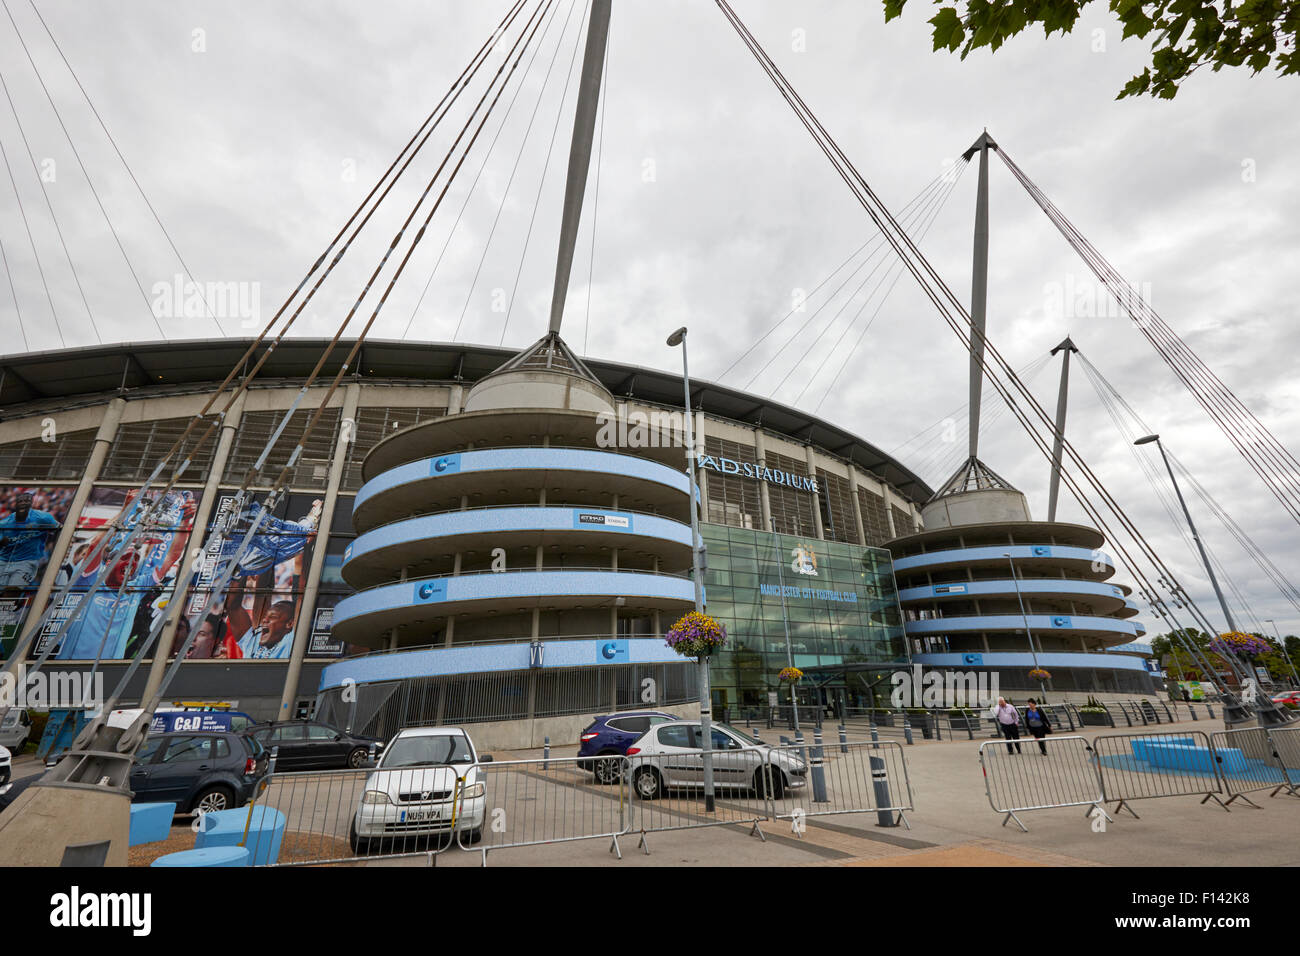 colin bell stand of Manchester City etihad stadium eastlands city of manchester stadiium uk - Stock Image